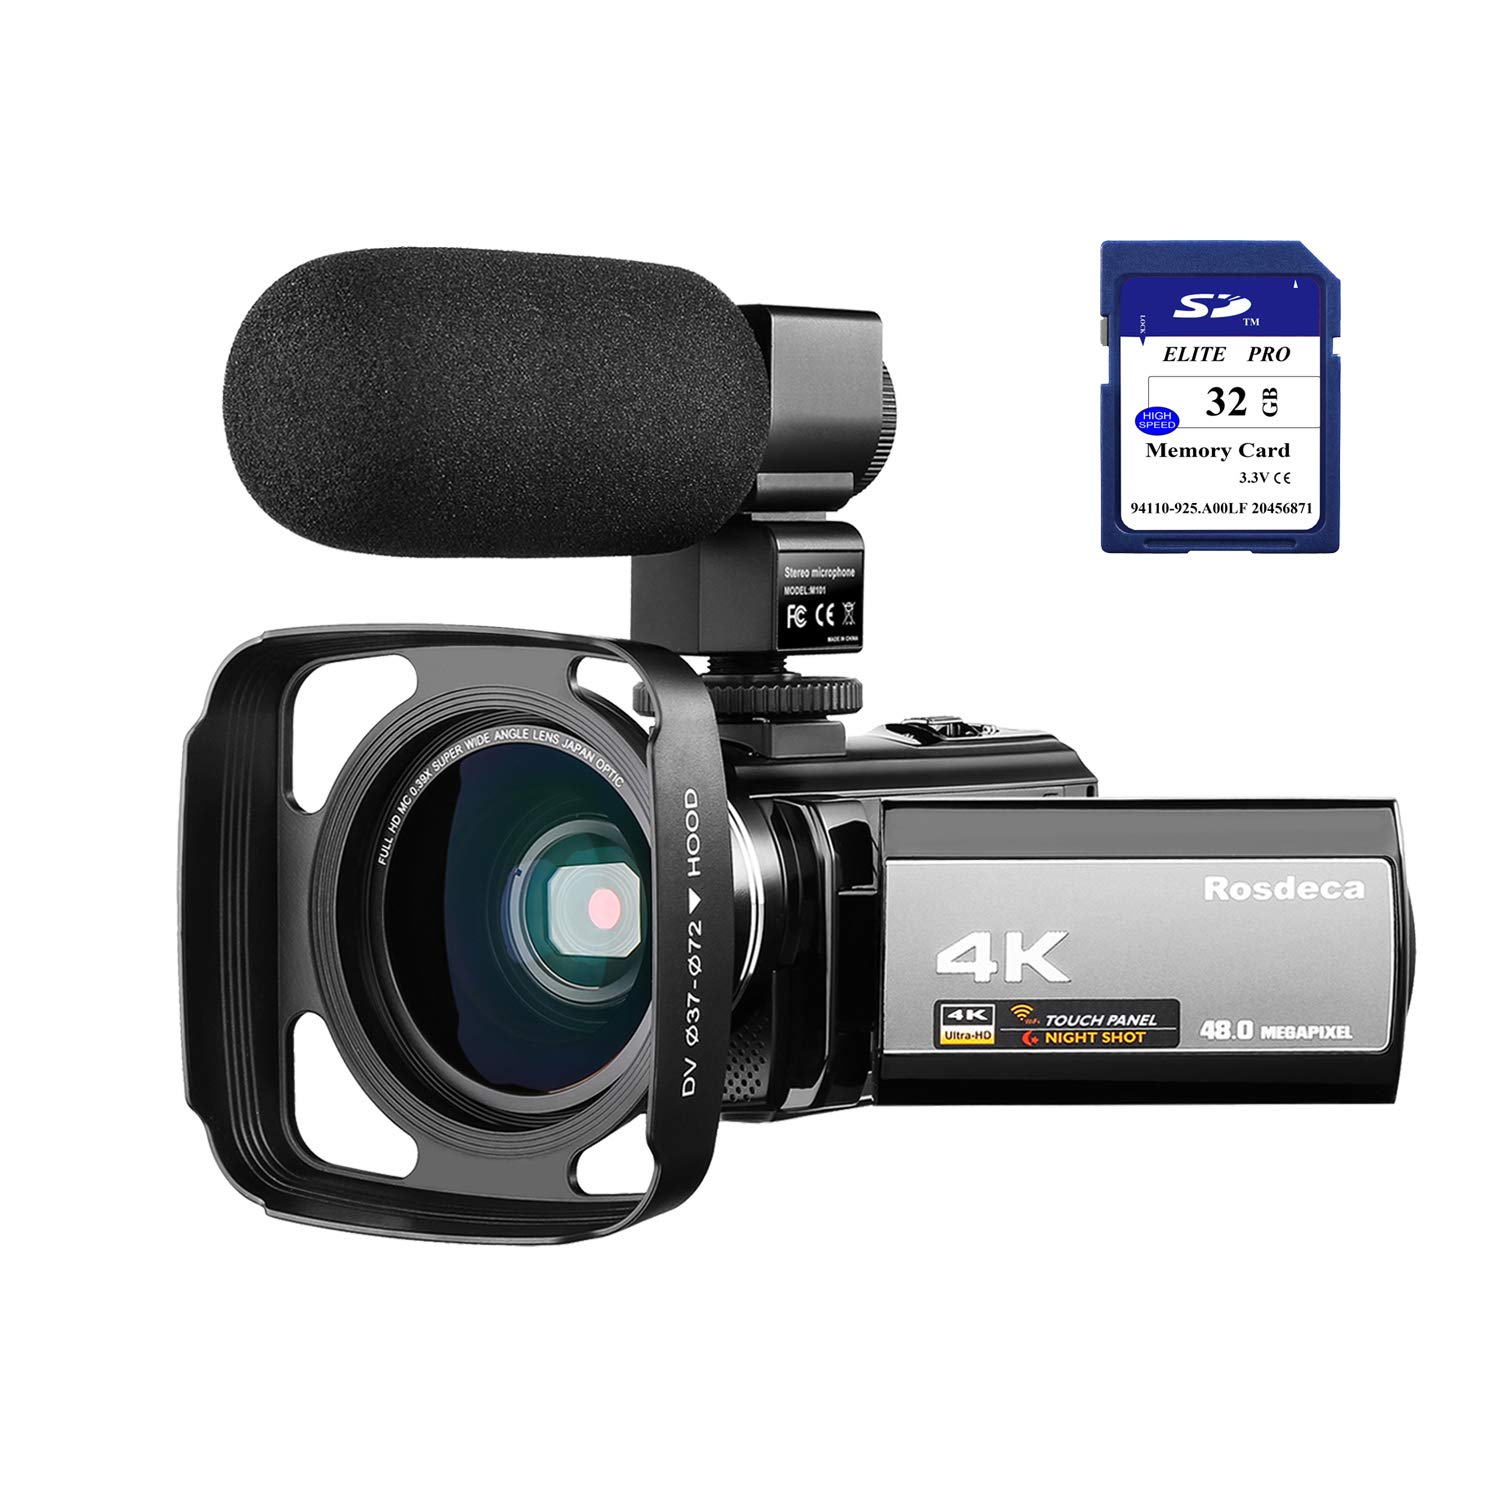 4K Camcorder Video Camera Rosdeca Ultra HD 48.0MP WiFi Digital Camera IR Night Vision 3.0'' IPS Touch Screen 16X Digital Zoom with External Microphone, Wide Angle Lens, Lens Hood and 2 Batteries by Rosdeca